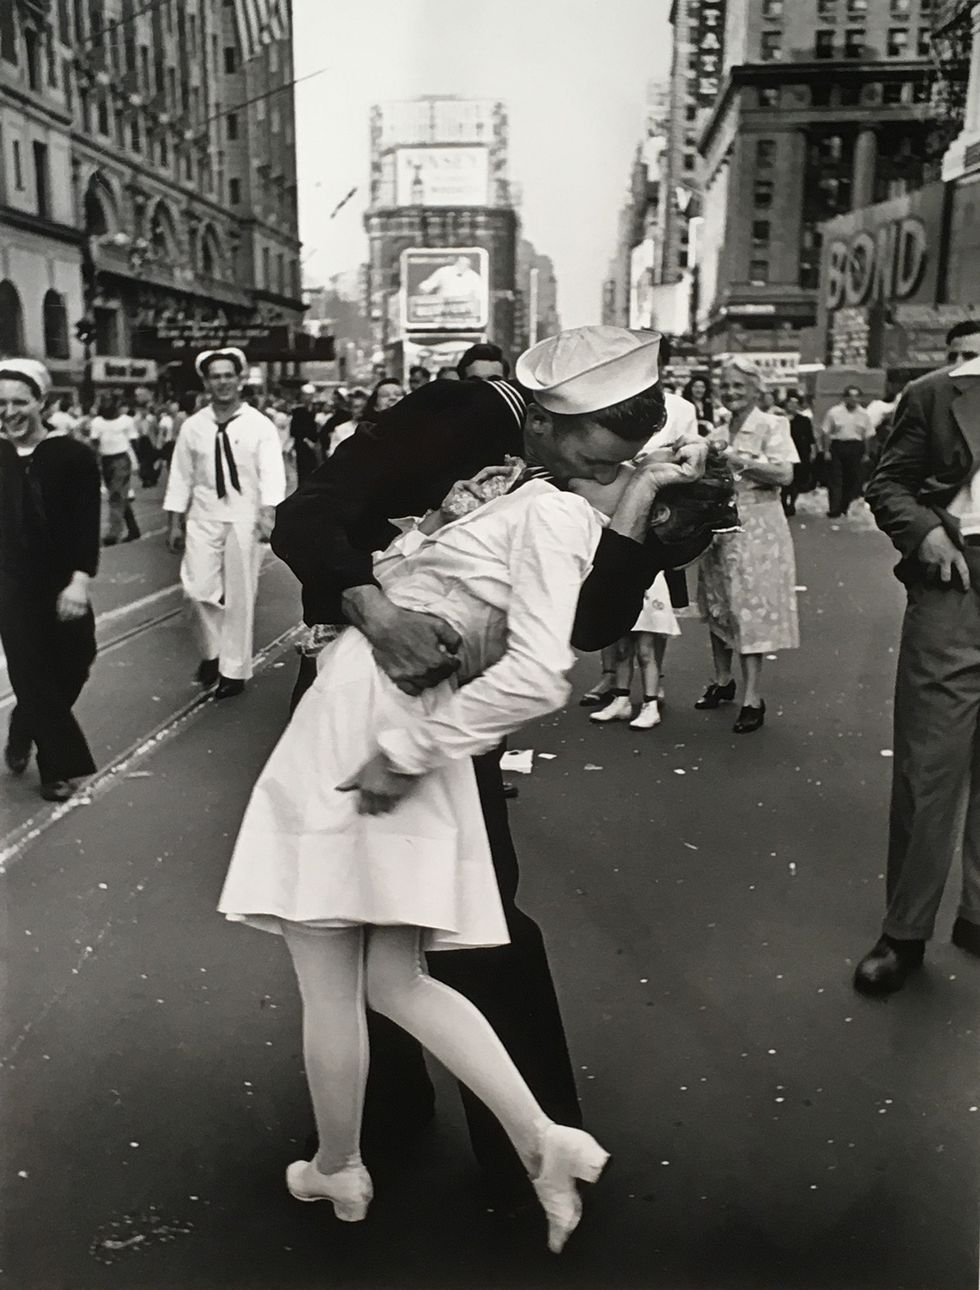 alfred-eisenstaedt-vj-day-in-times-square-august-14-1945-c-alfred-eisenstaedt-time-life-pictures-getty-images-courtesy-robert-mann-gallery-1554482712.jpg